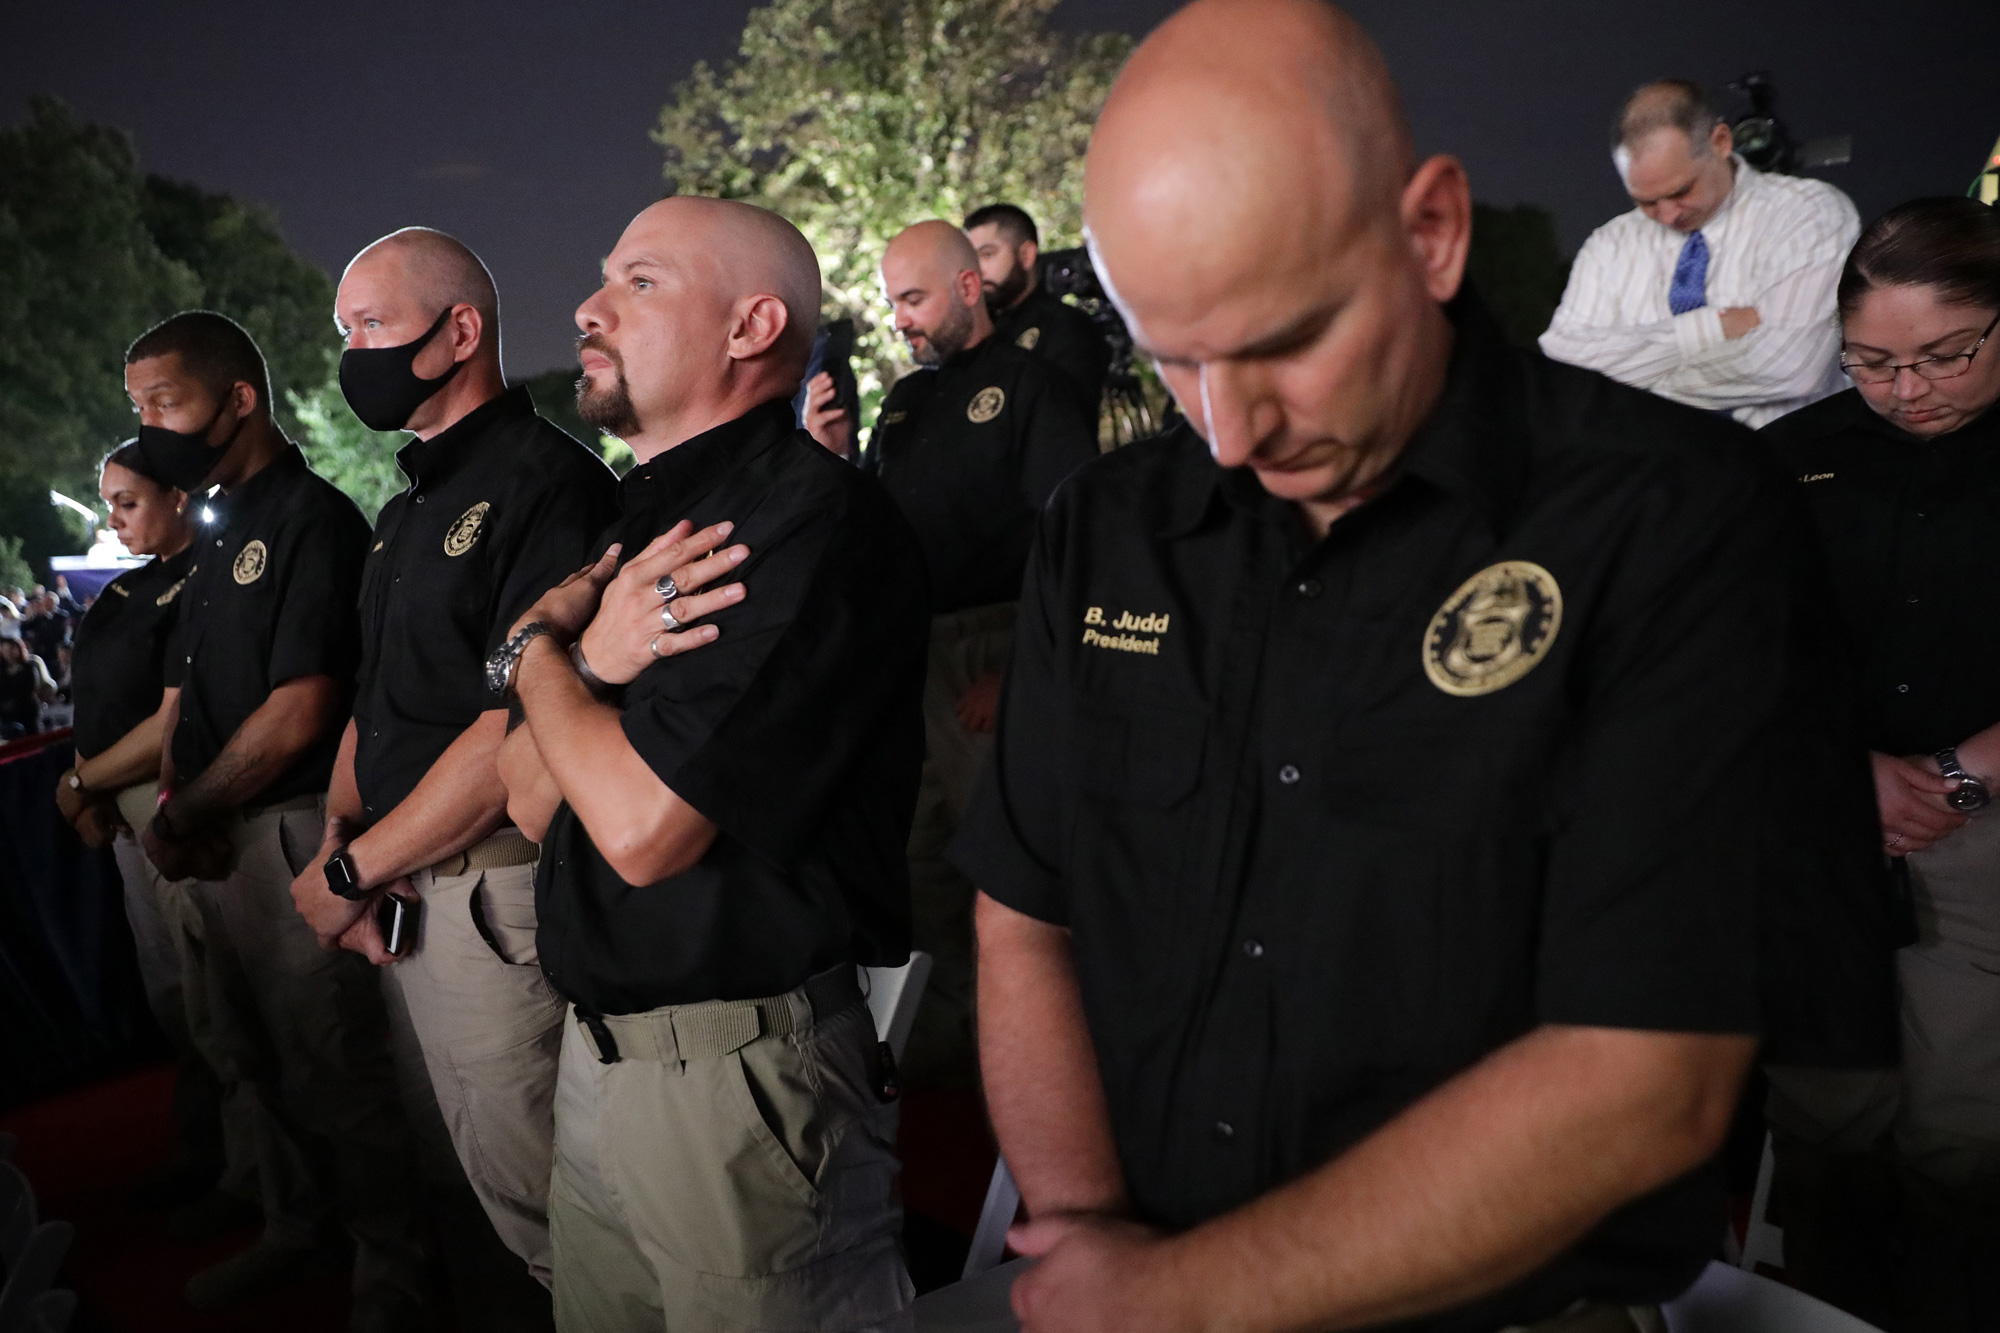 WASHINGTON, DC - AUGUST 27:  Members of the National Border Patrol Council in attendance as U.S. President Donald Trump prepares to deliver his acceptance speech for the Republican presidential nomination on the South Lawn of the White House August 27, 2020 in Washington, DC. Trump gave the speech in front of 1500 invited guests.  (Photo by Chip Somodevilla/Getty Images)